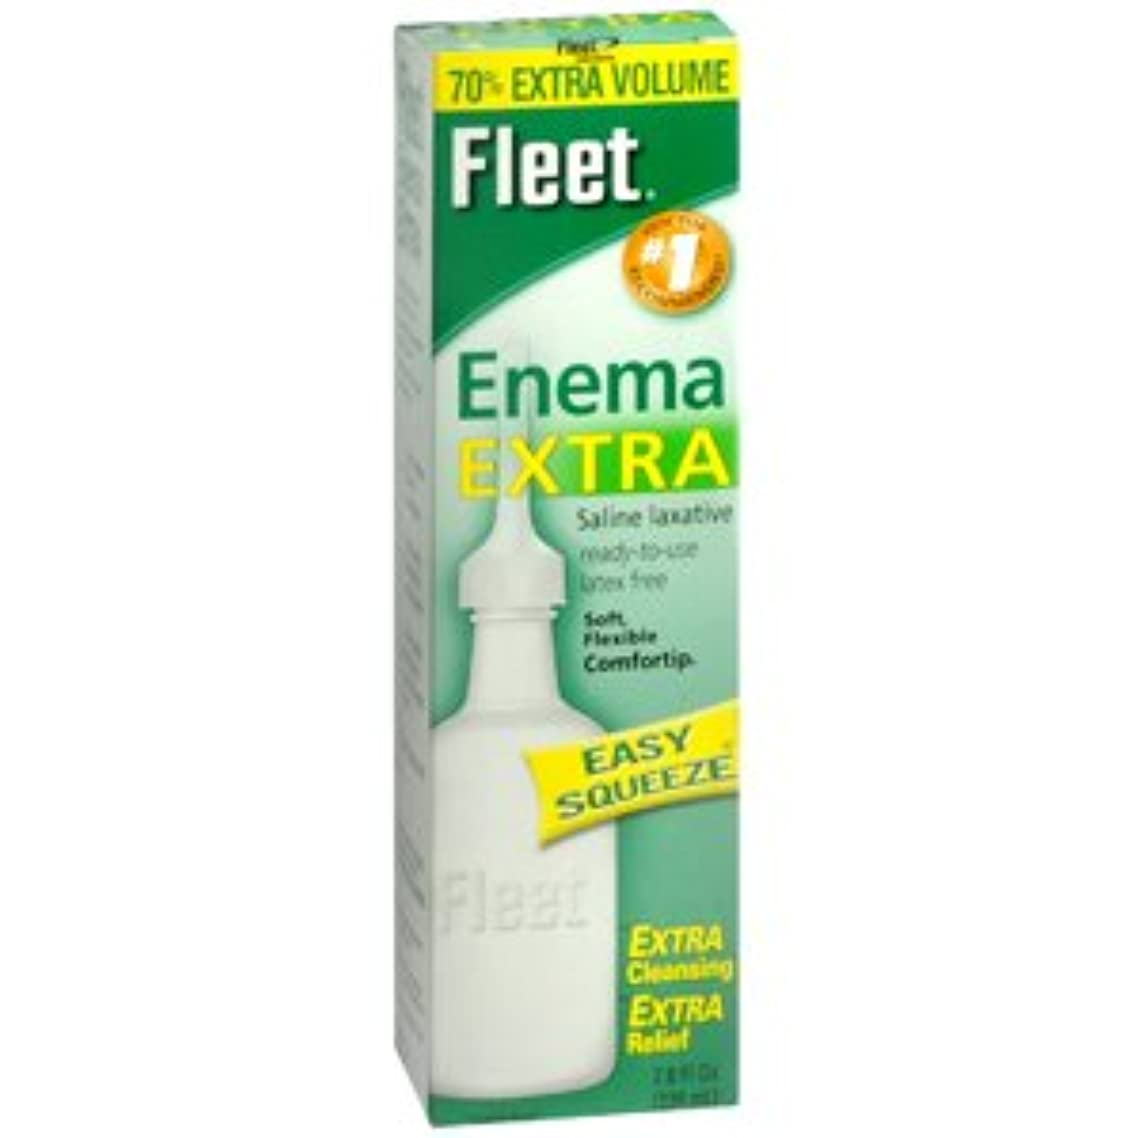 Special pack of 6 Fleet Enema, Ready-to-Use Saline Laxative 7.8 fl oz (230 ml)